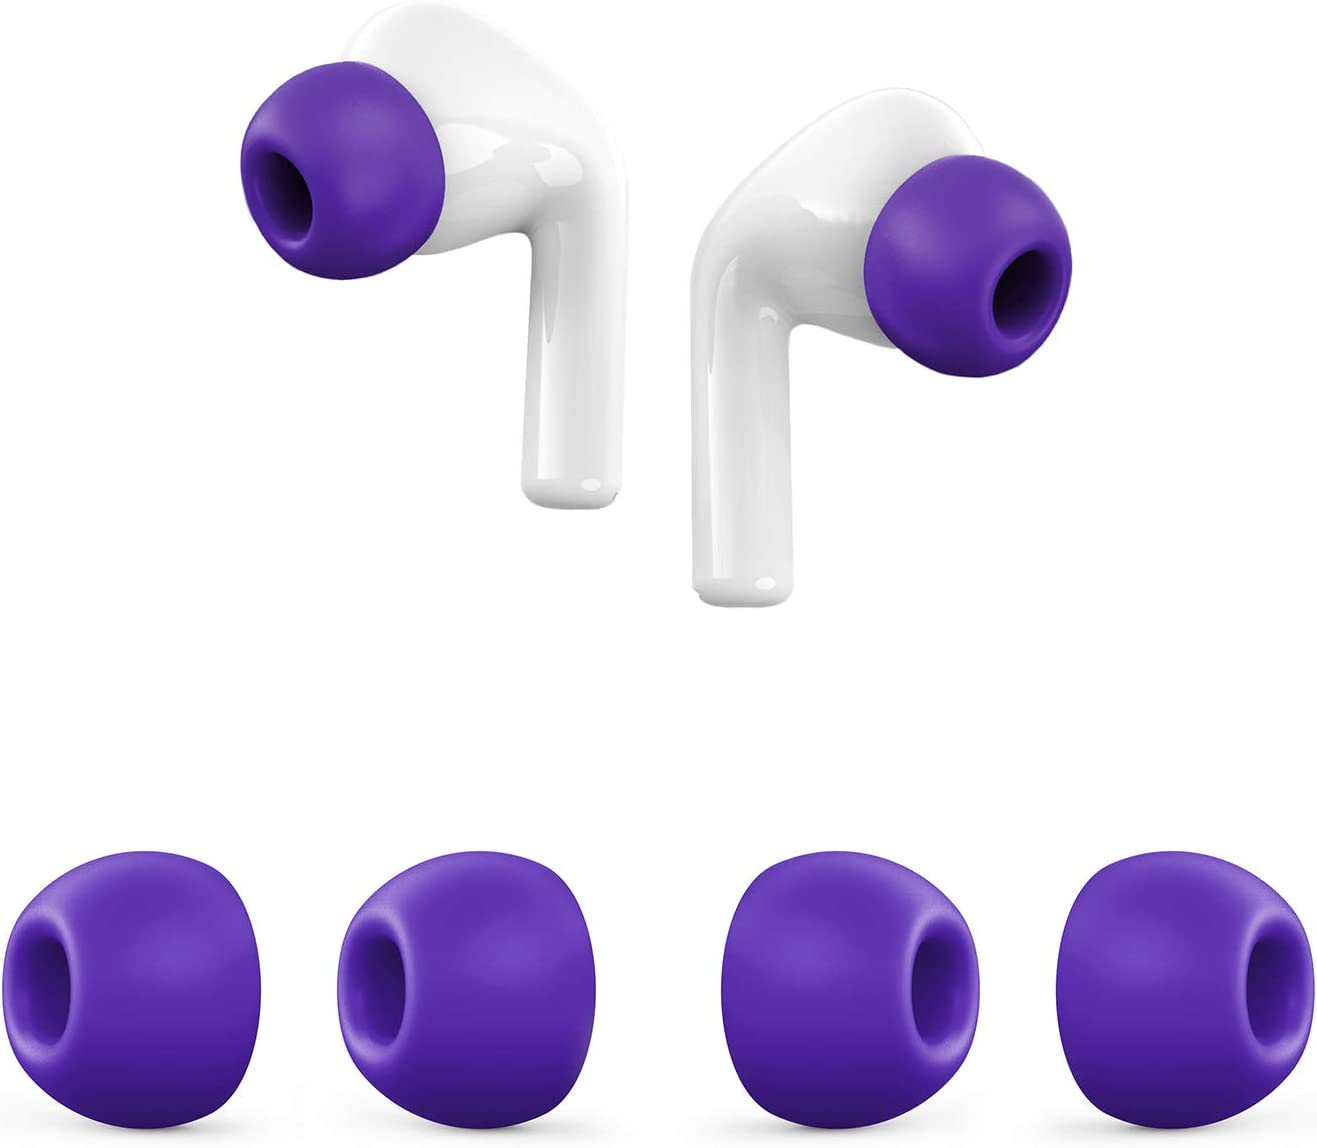 Silicone Ear Tips for AirPods Pro,Anti Slip Replacement Soft Silicone Earphone Tips for AirPods Pro(AirPods 3),2 Pairs,Medium,Purple